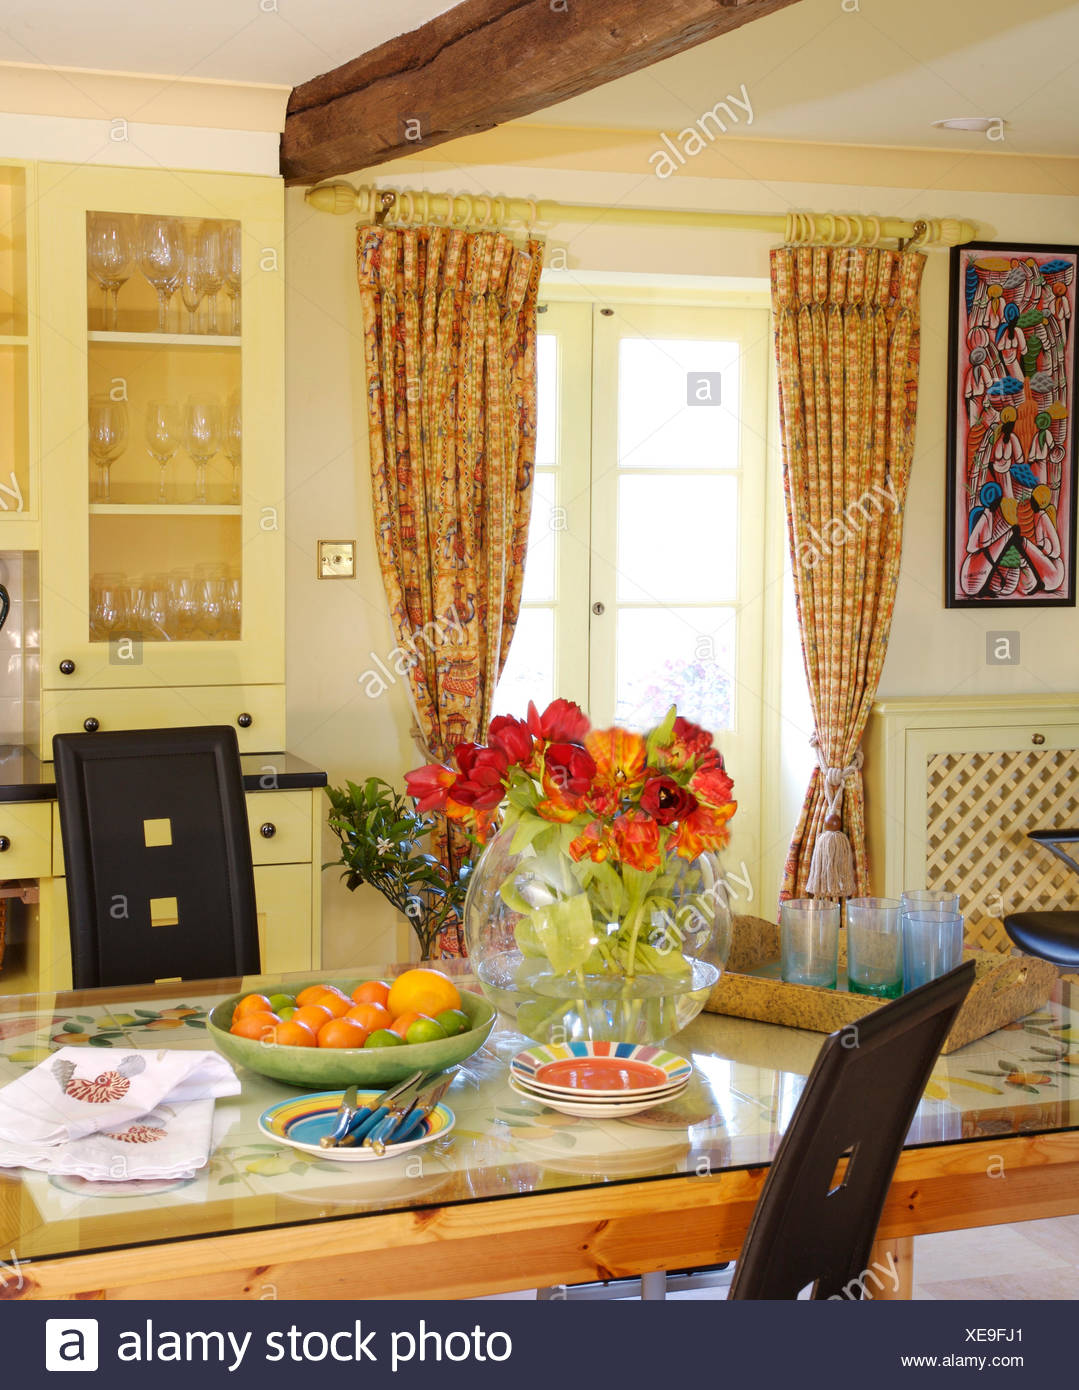 Vase Of Orange Tulips On A Glass Topped Table In Yellow Cottage Dining Room With Patterned